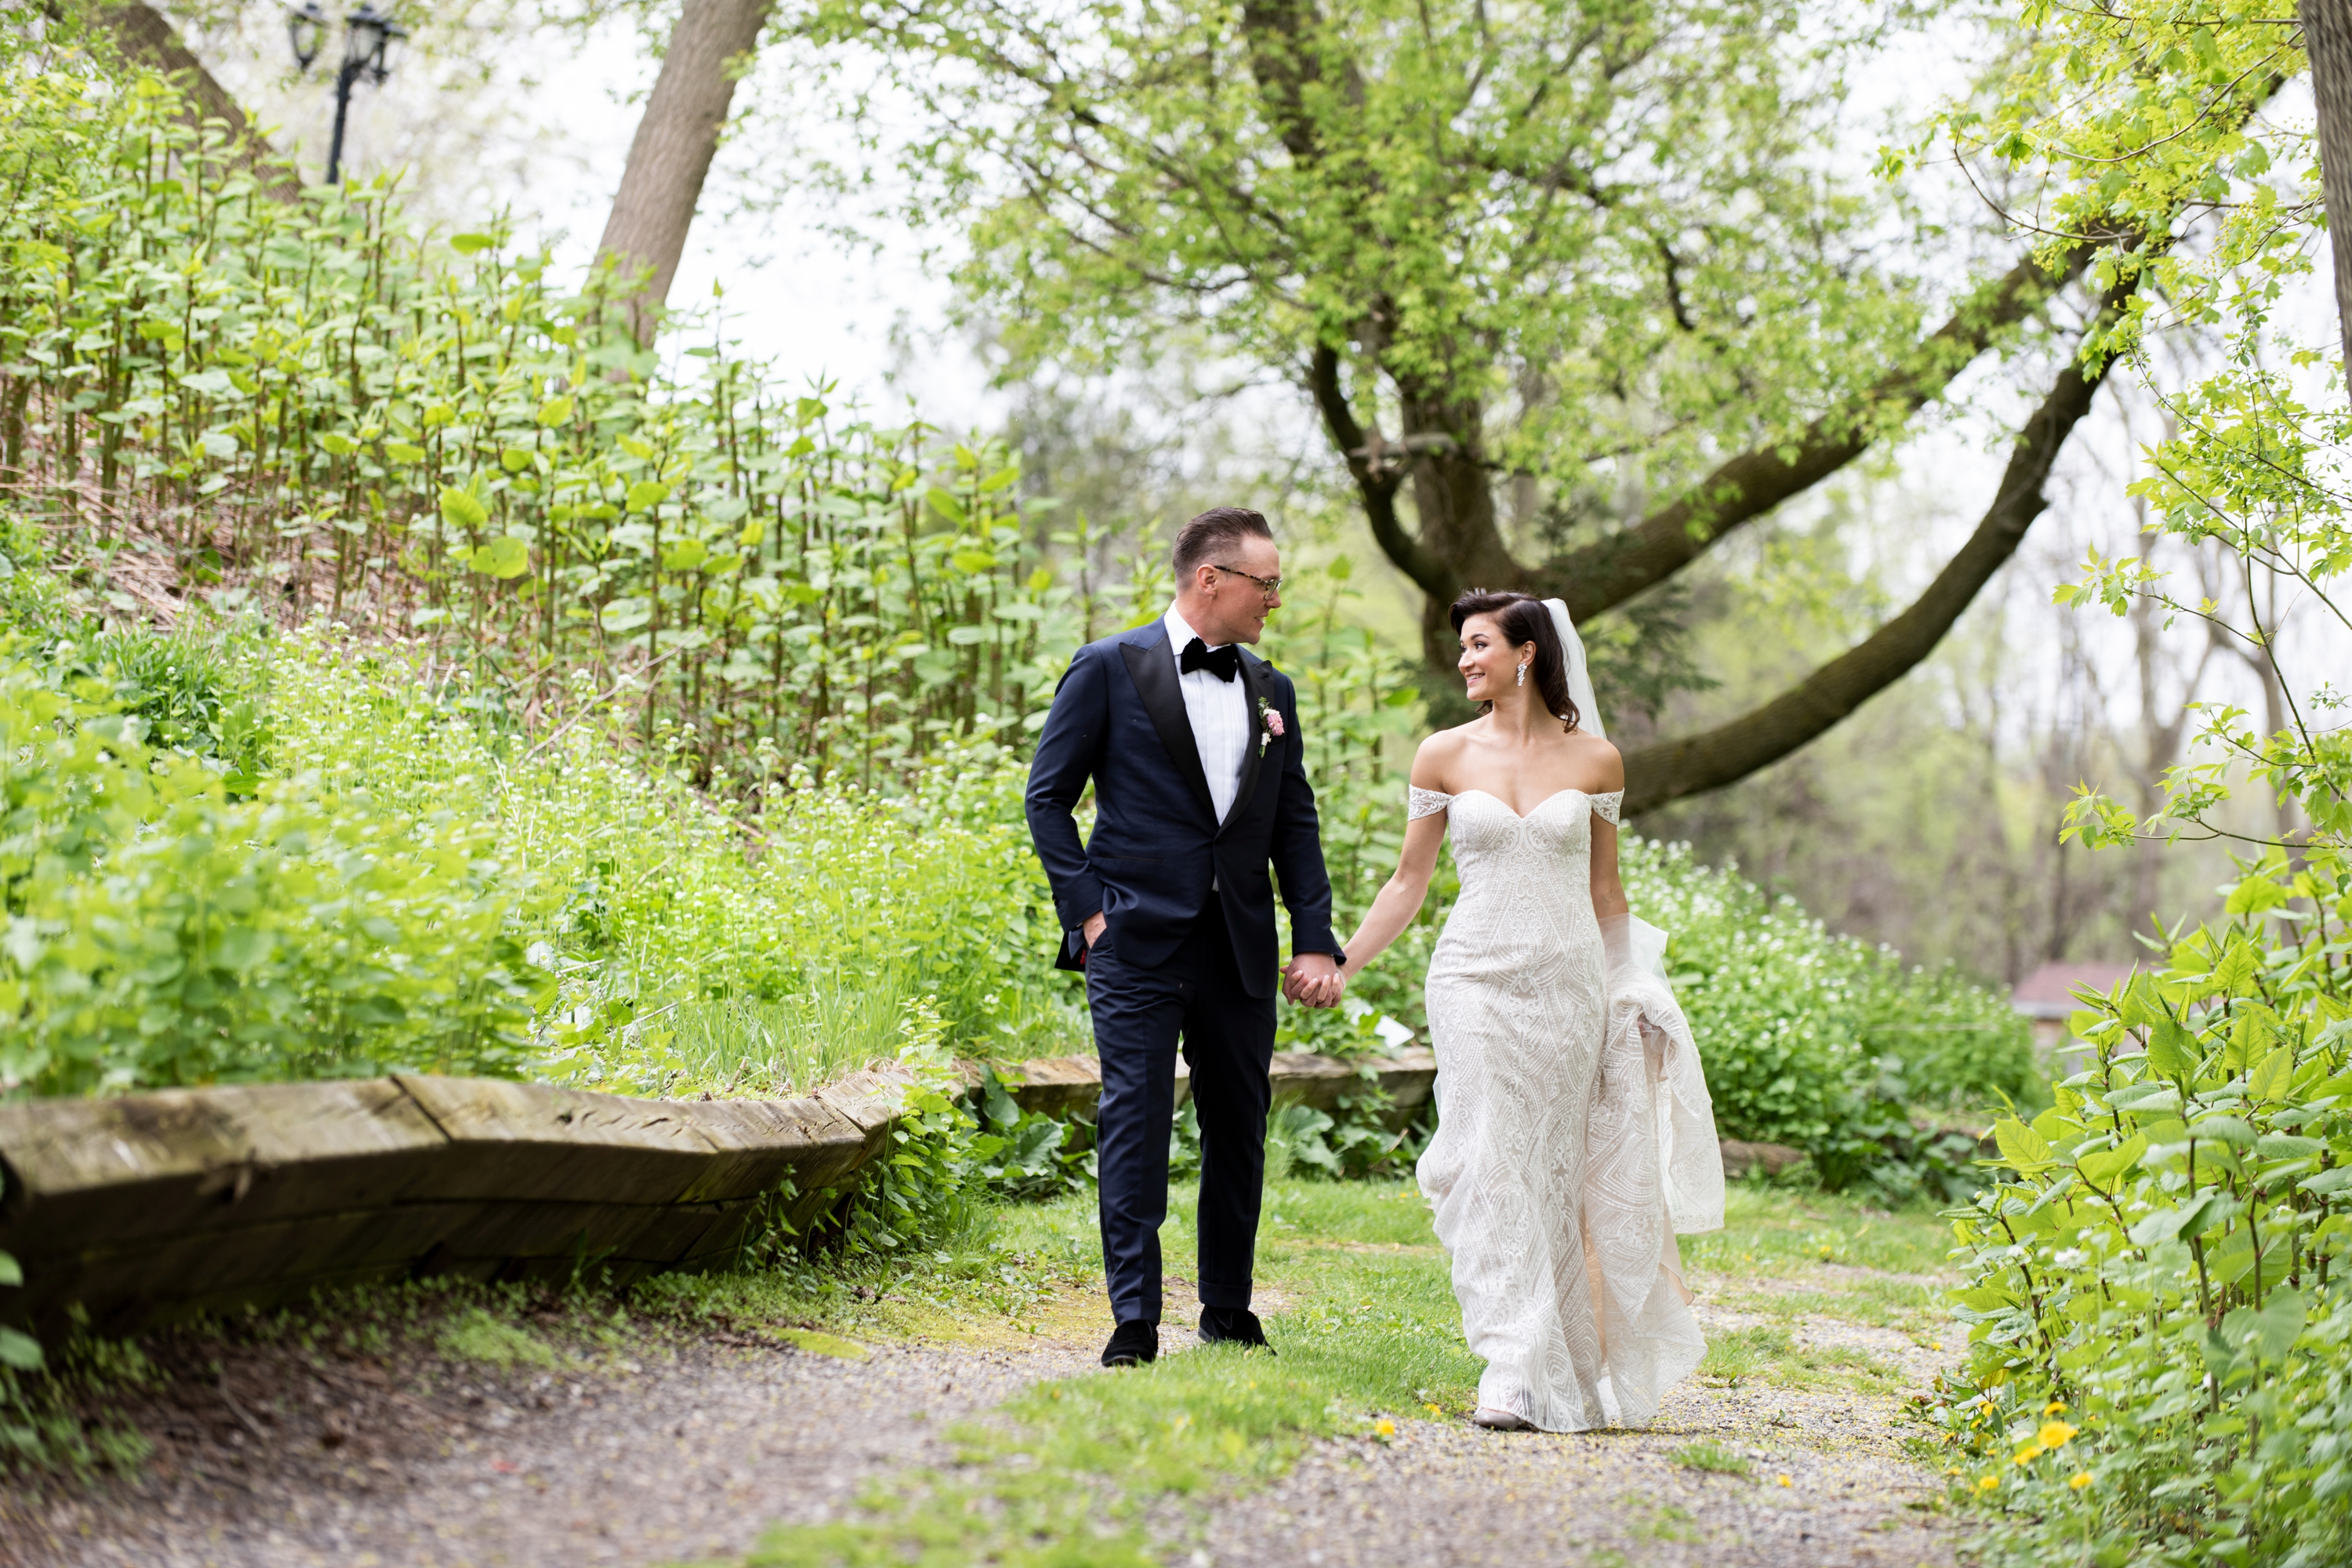 Couple Walk Josh Zsuzsi Pal Photography Wedding Elmhurst Inn Studio Lumen